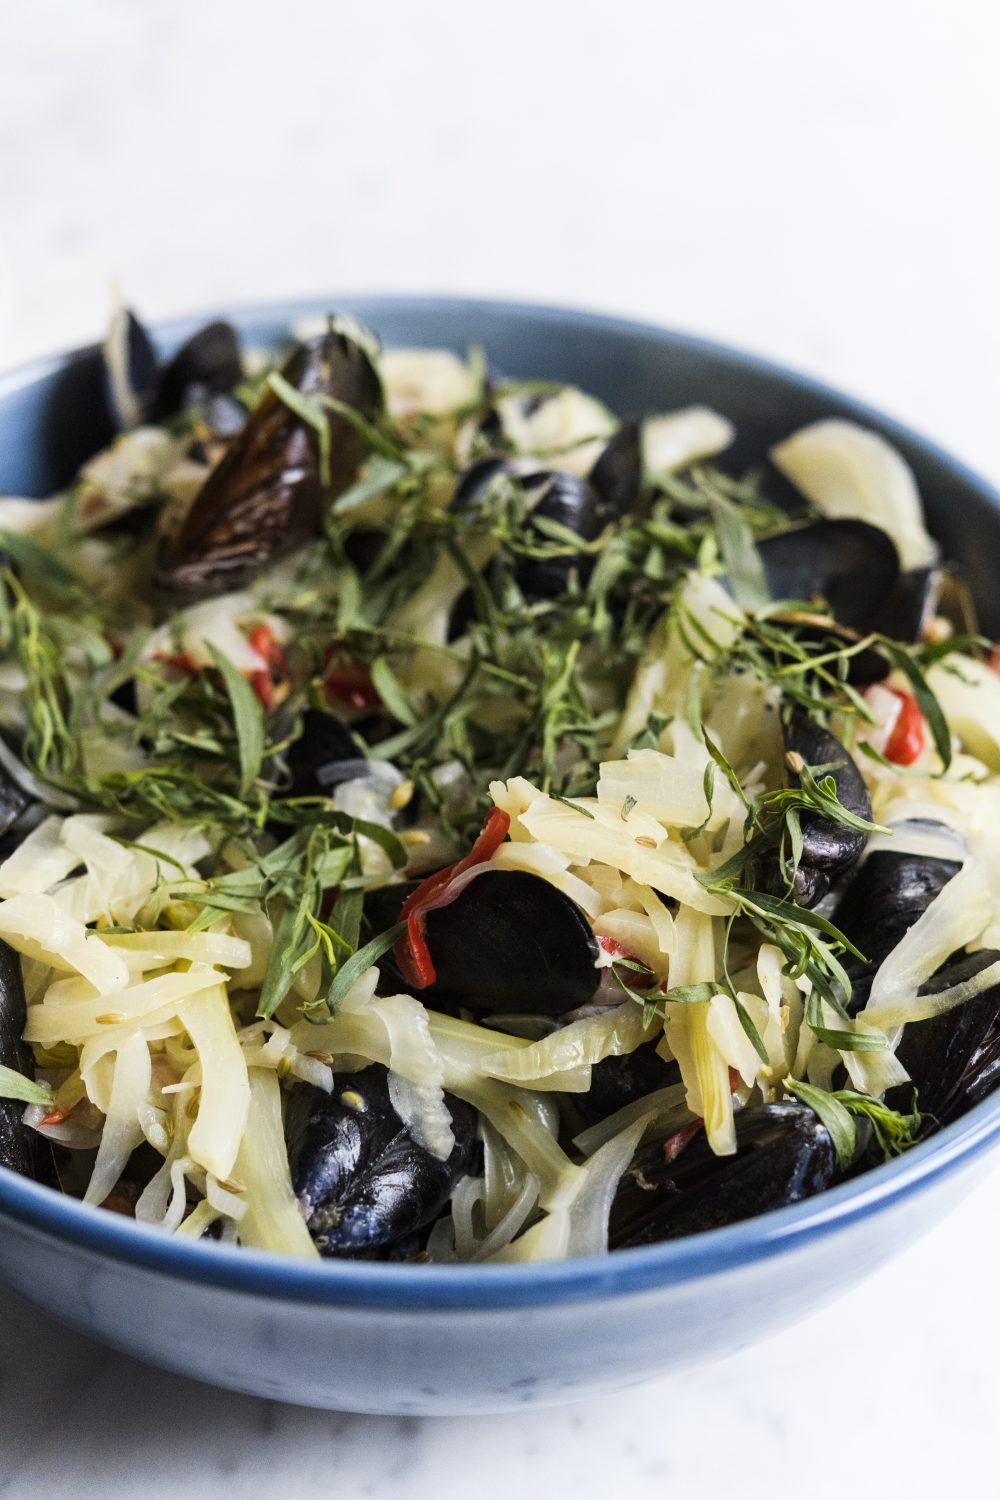 Mussels with Fennel, Crème Fraîche and Vermouth